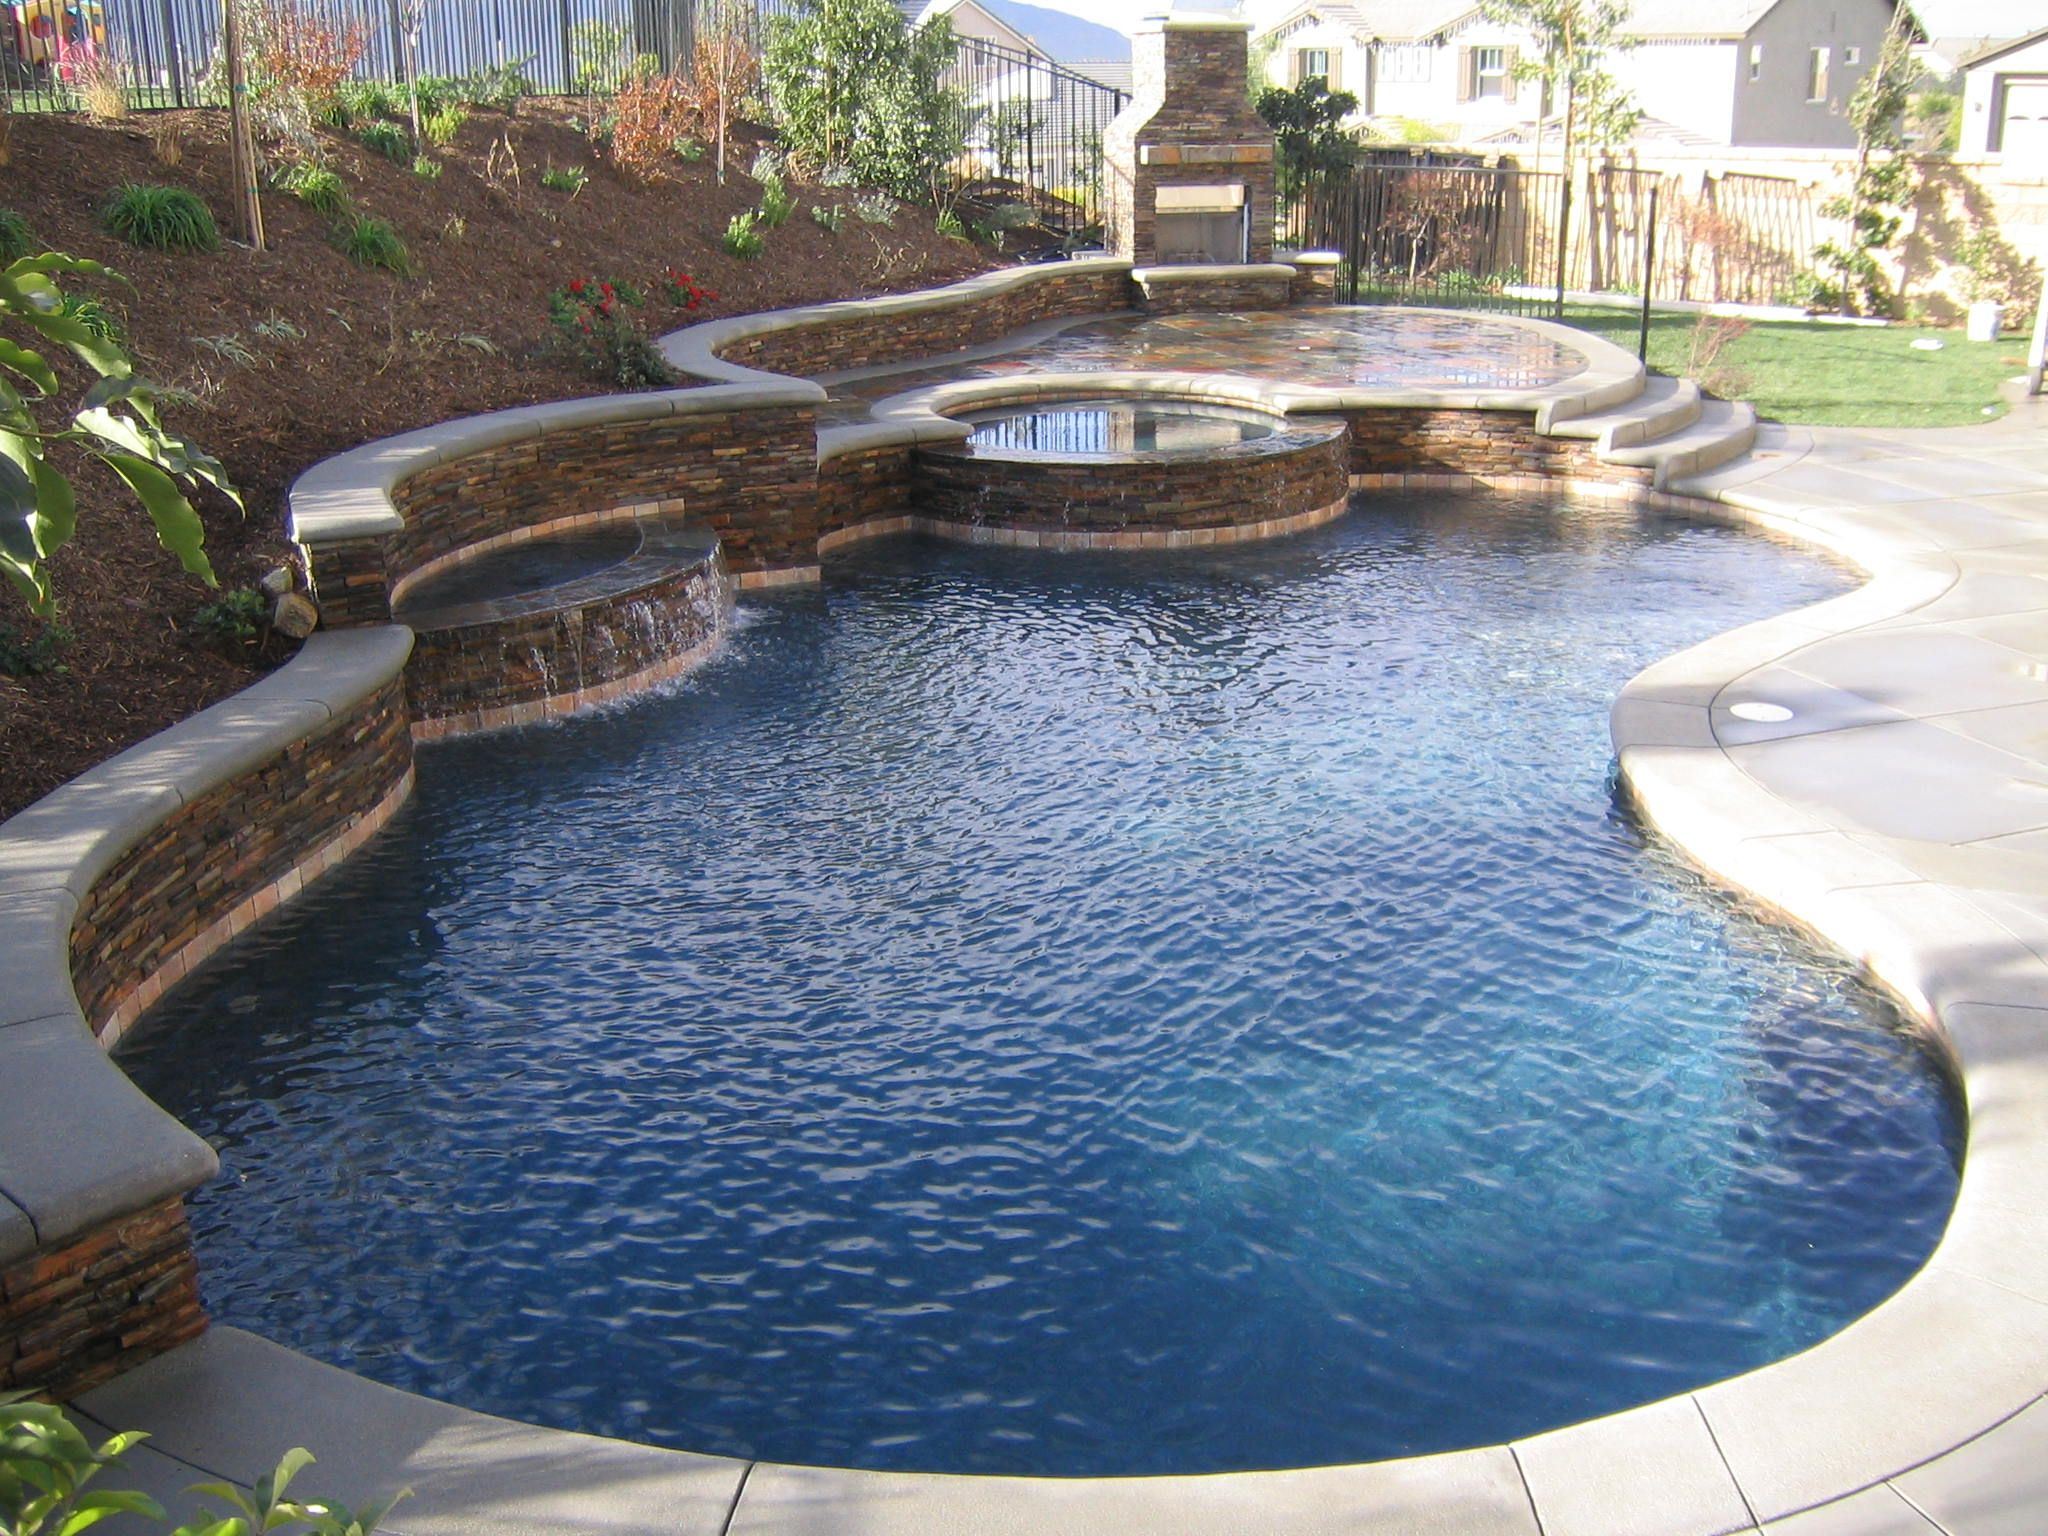 Jacuzzi Pool Repairs We Specialize In Full Service Pool And Spa Cleaning And